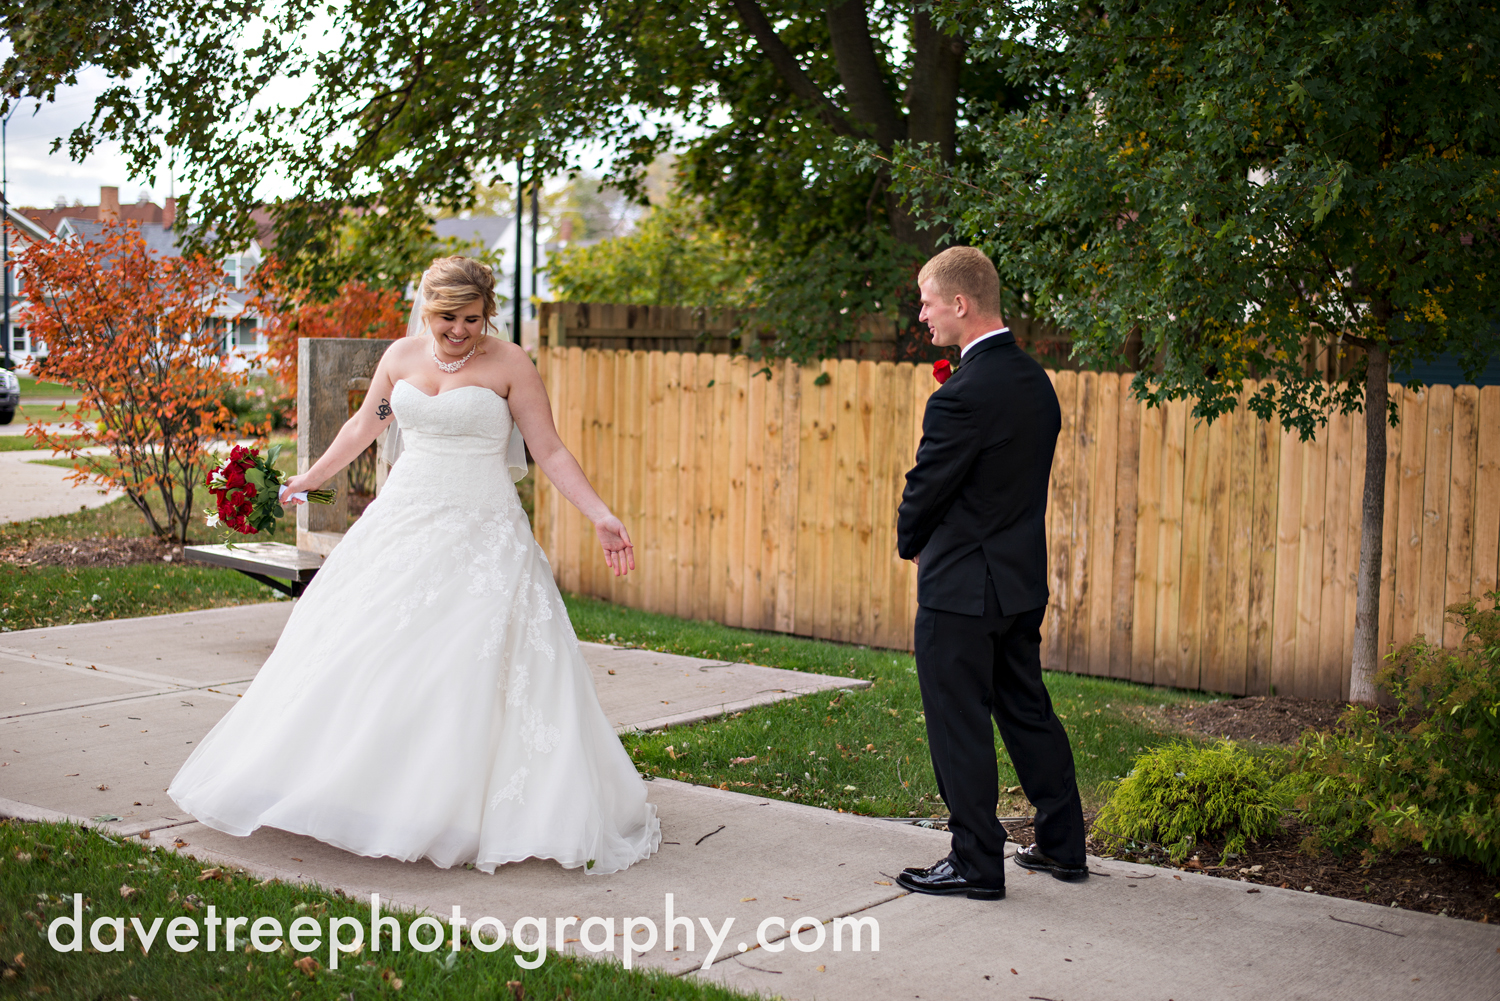 holland_wedding_photographer_85.jpg